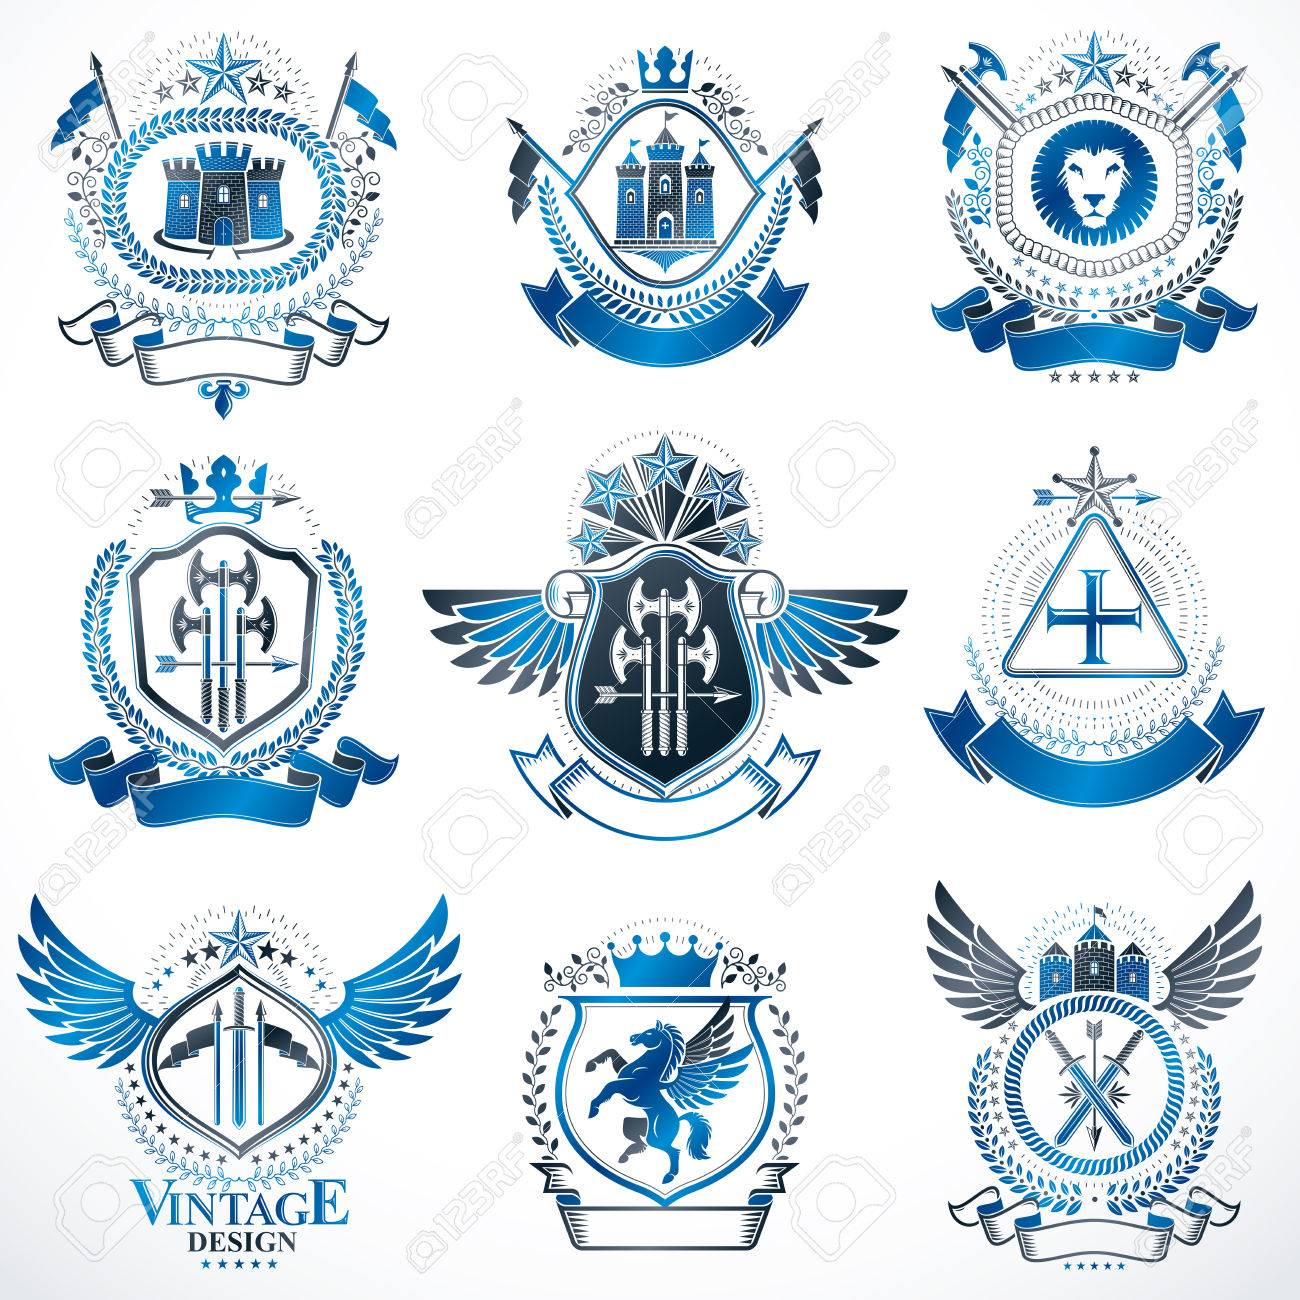 Vector classy heraldic coat of arms collection of blazons stylized vector classy heraldic coat of arms collection of blazons stylized in vintage design and created biocorpaavc Images